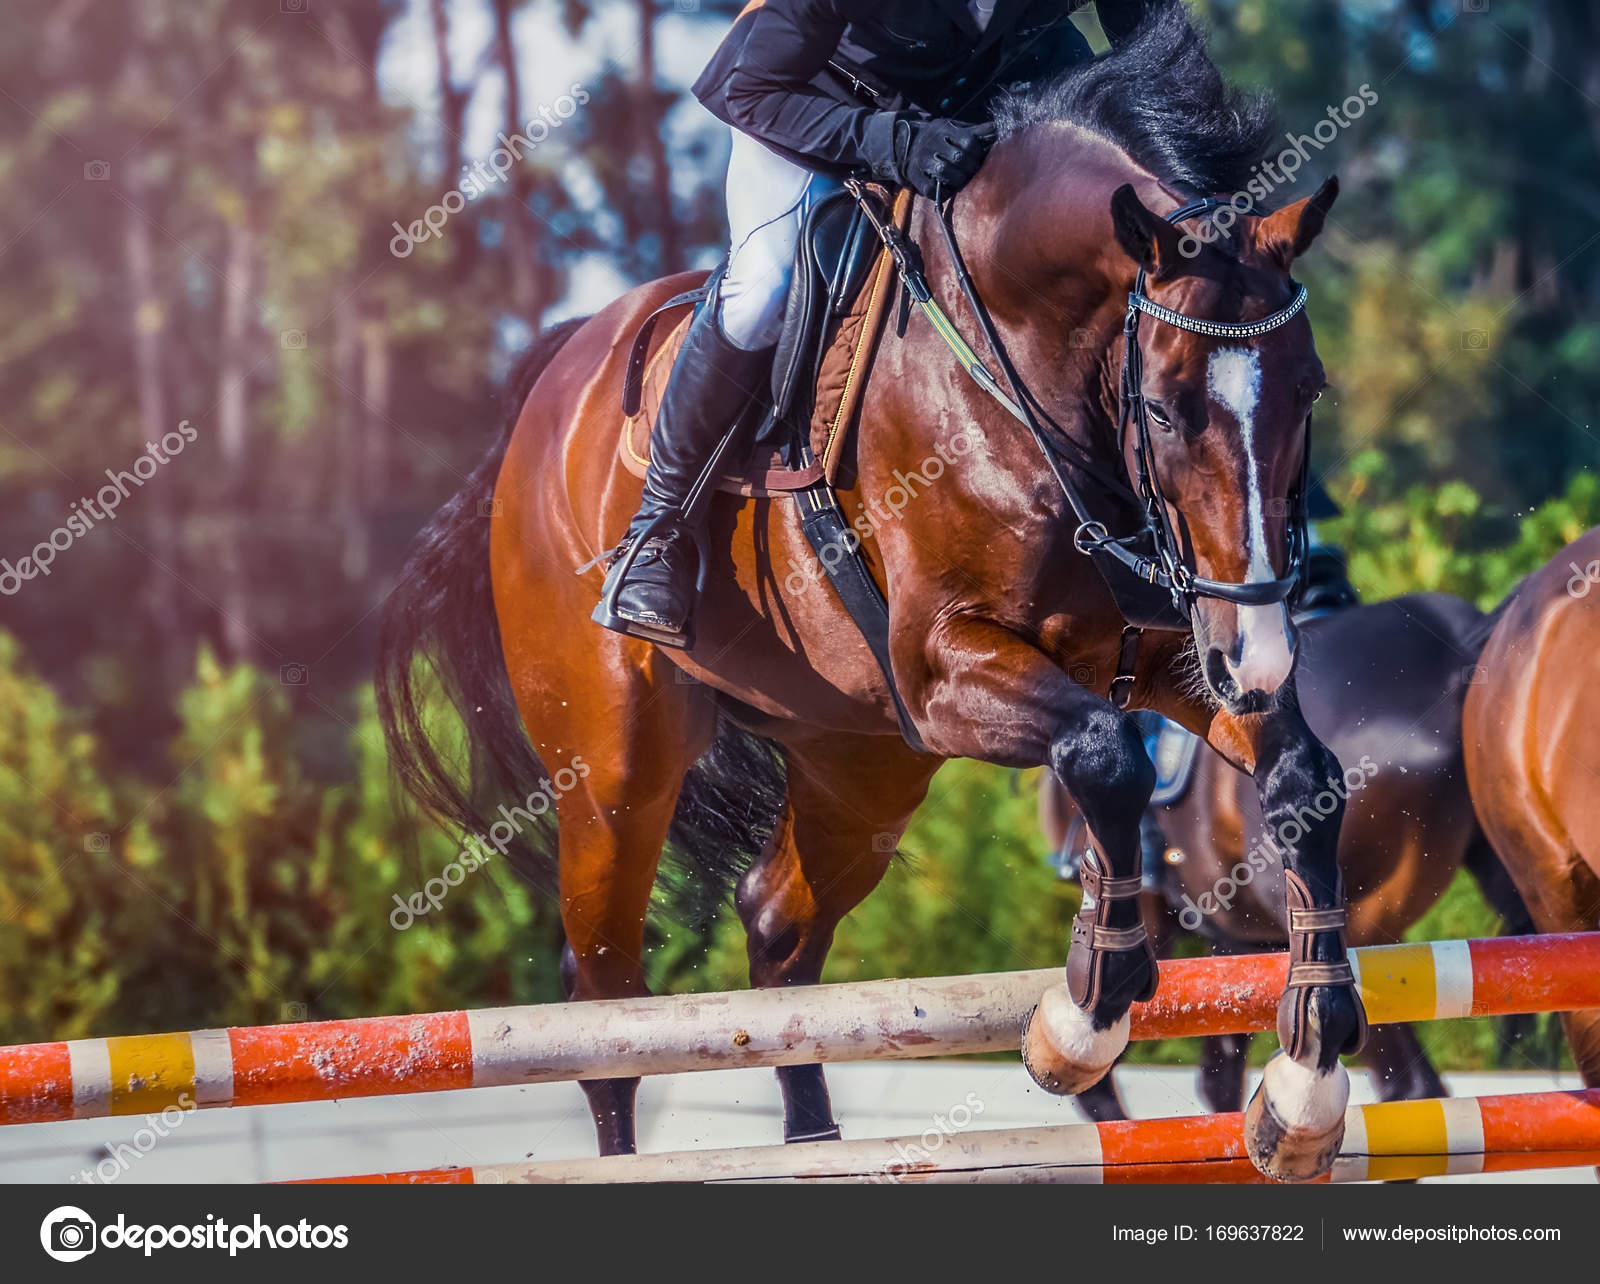 Bay Dressage Horse And Rider In Uniform Performing Jump At Show Jumping Competition Equestrian Sport Background Stock Photo C Martanovak 169637822